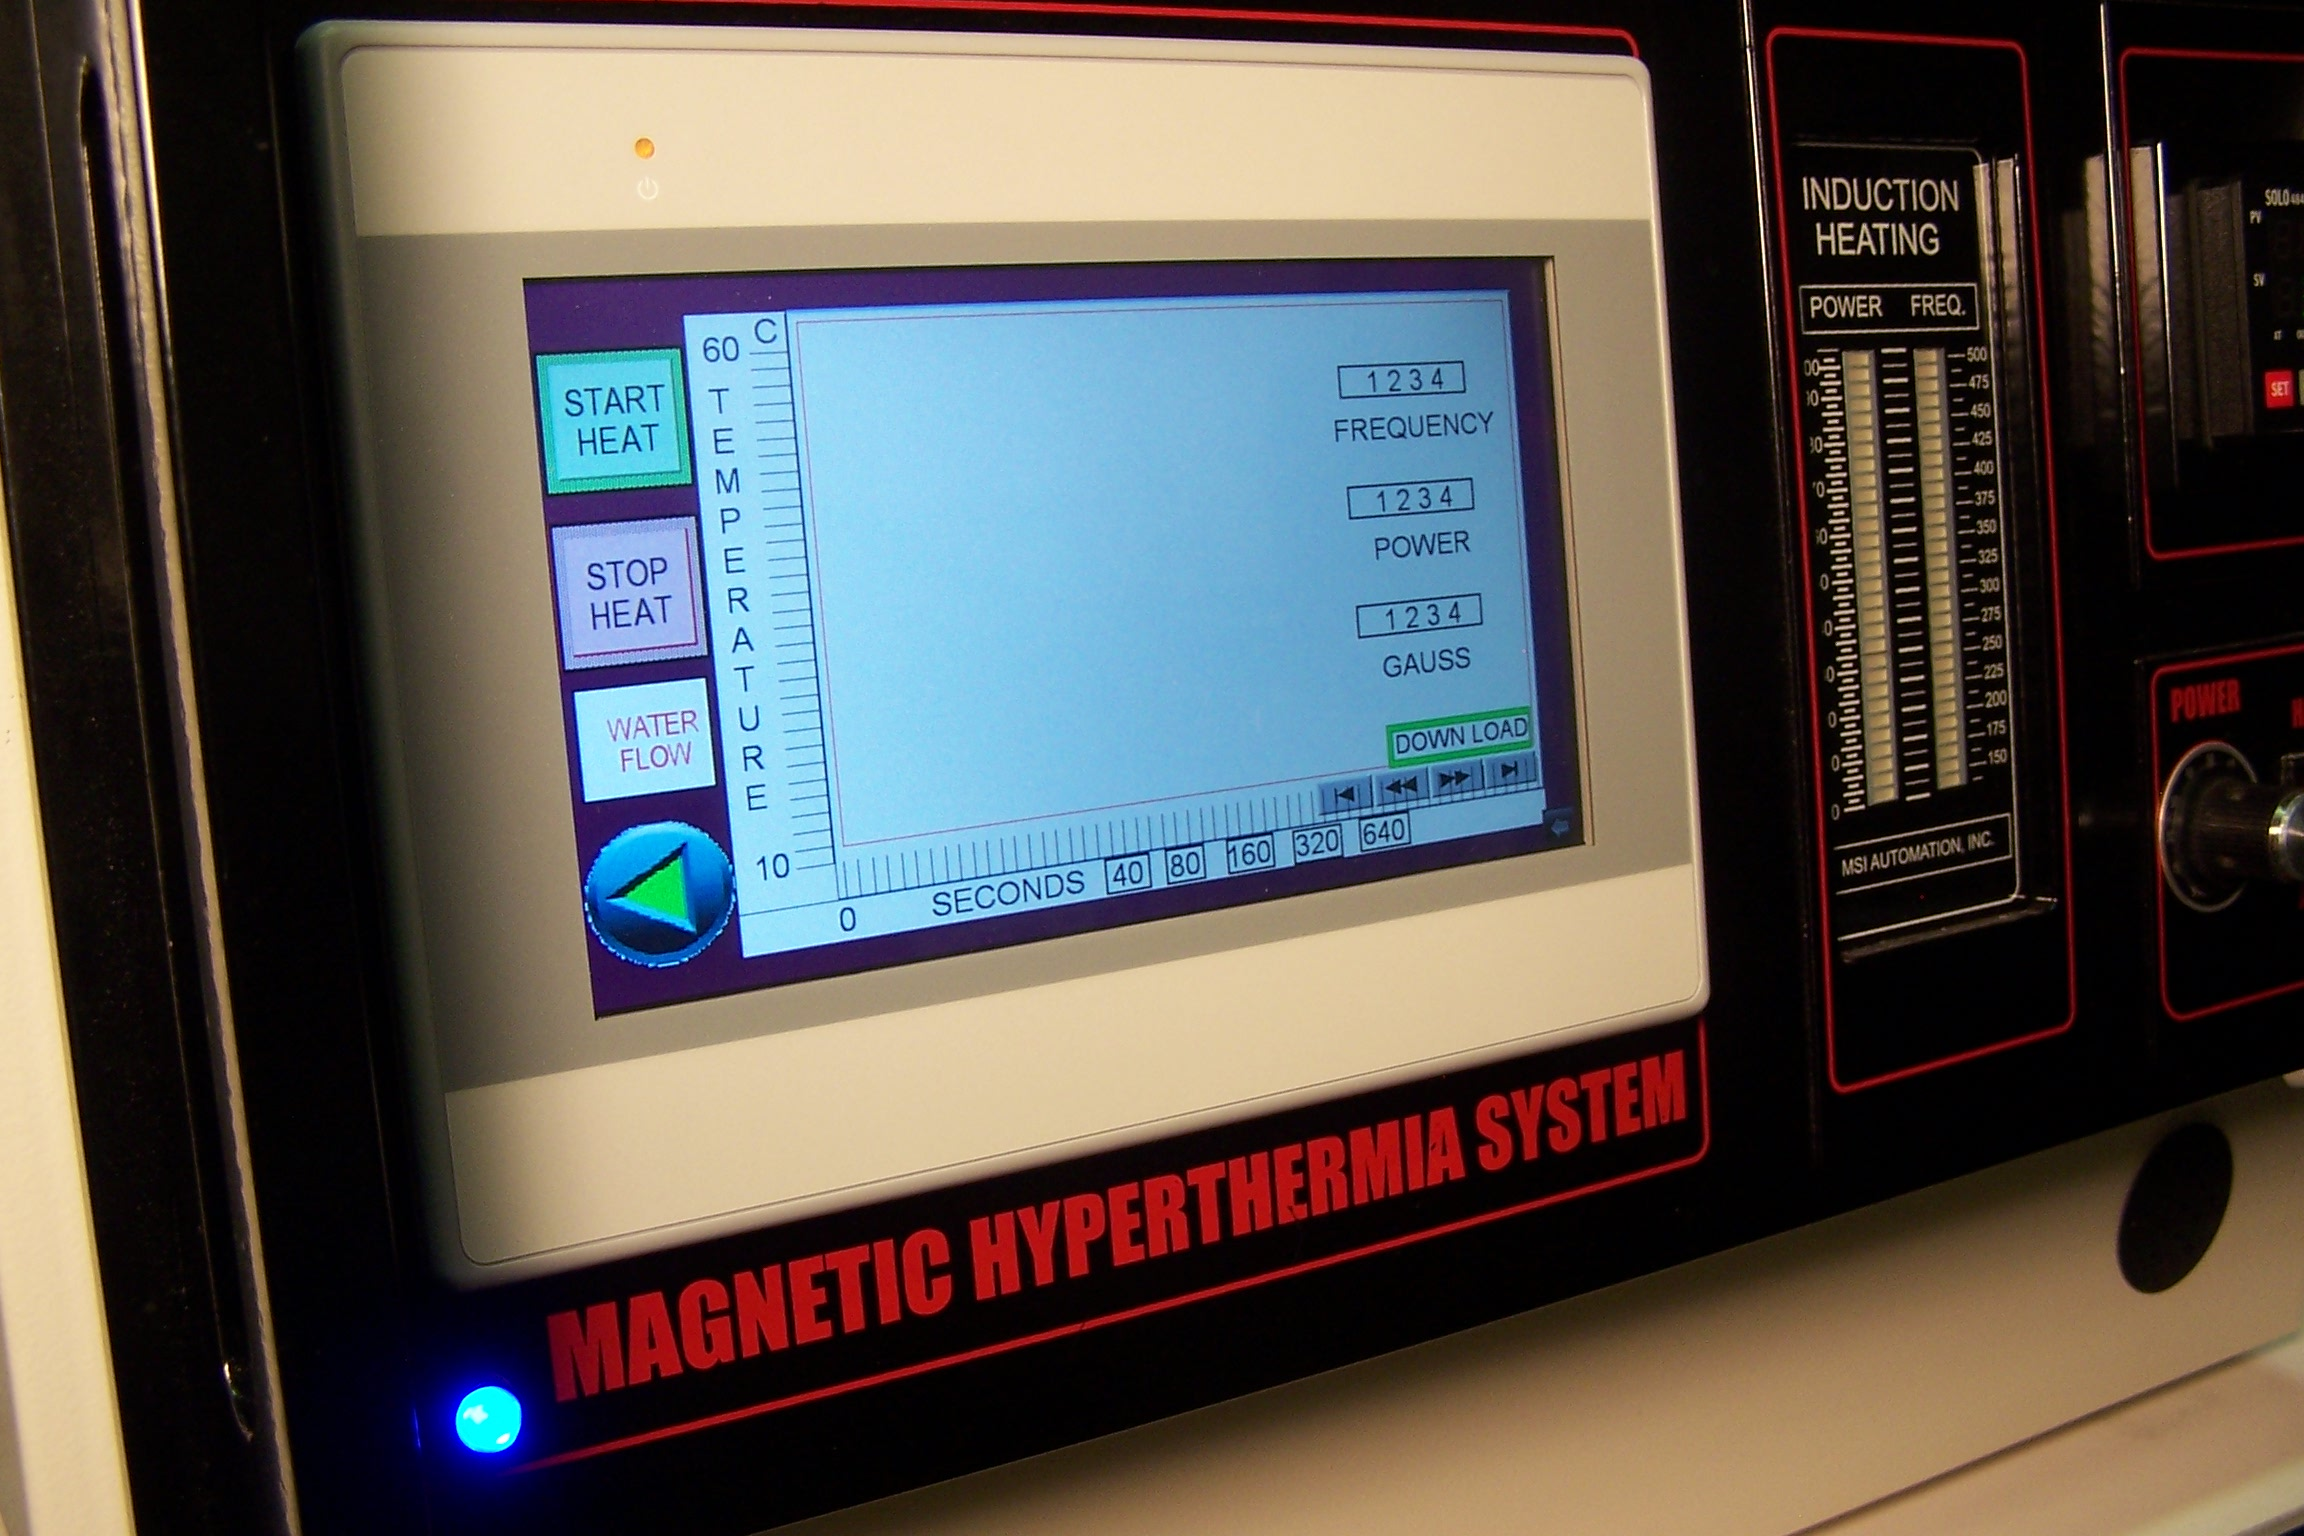 Magnetic Hyperthermia